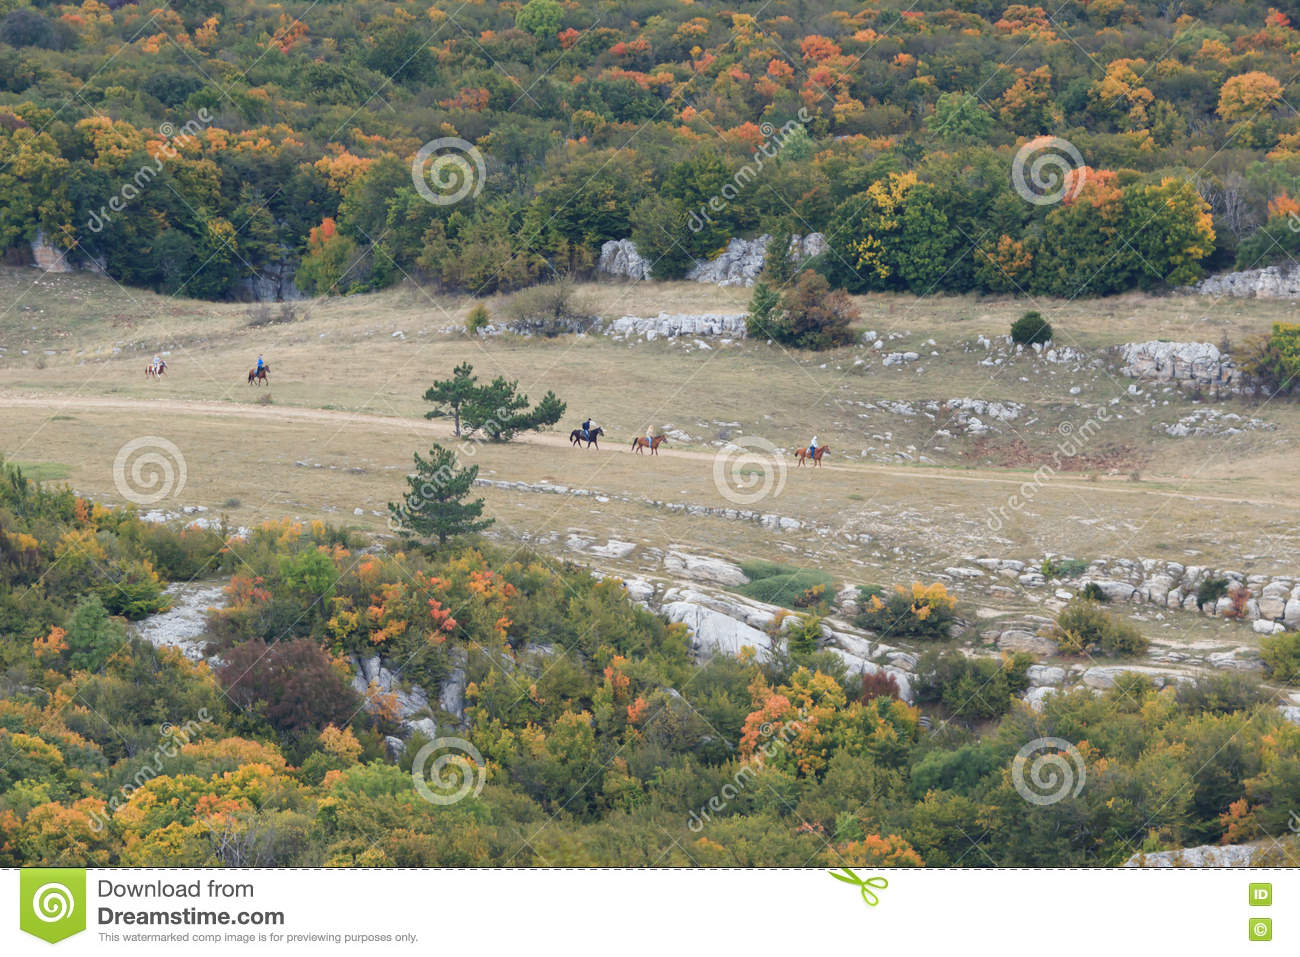 Valley in fall with horses running.